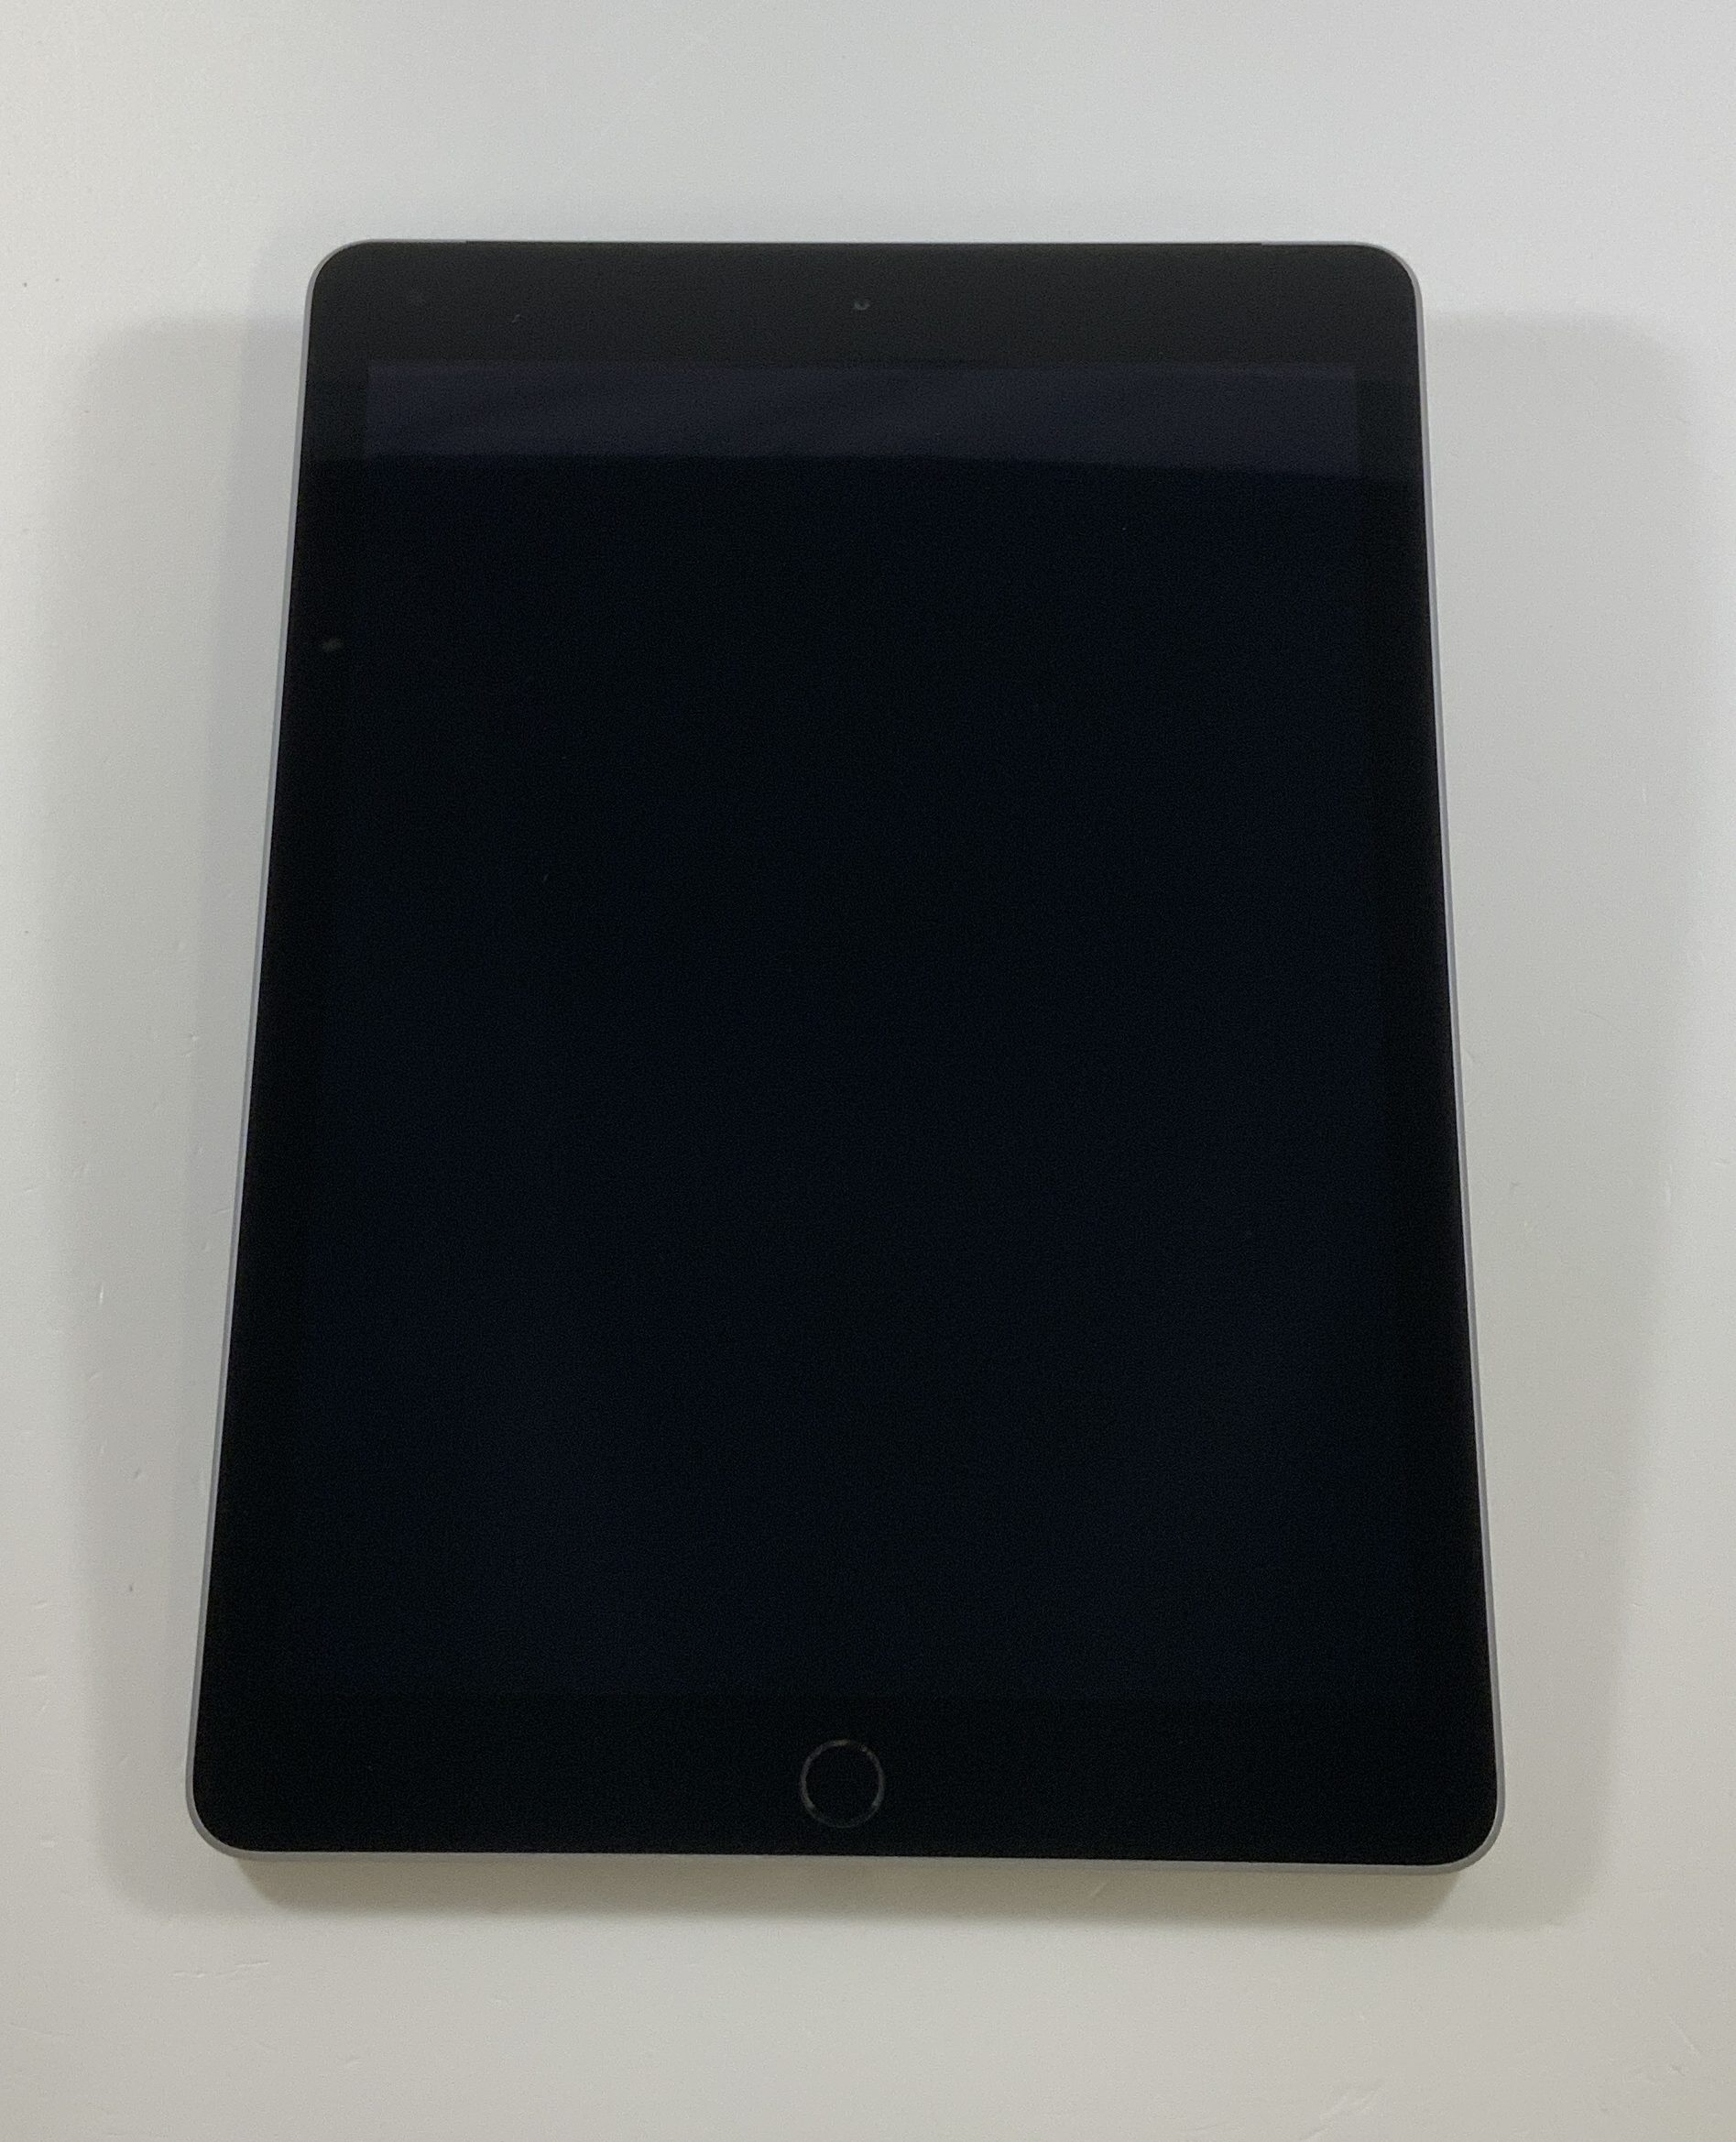 iPad 5 Wi-Fi + Cellular 128GB, 128GB, Space Gray, image 1